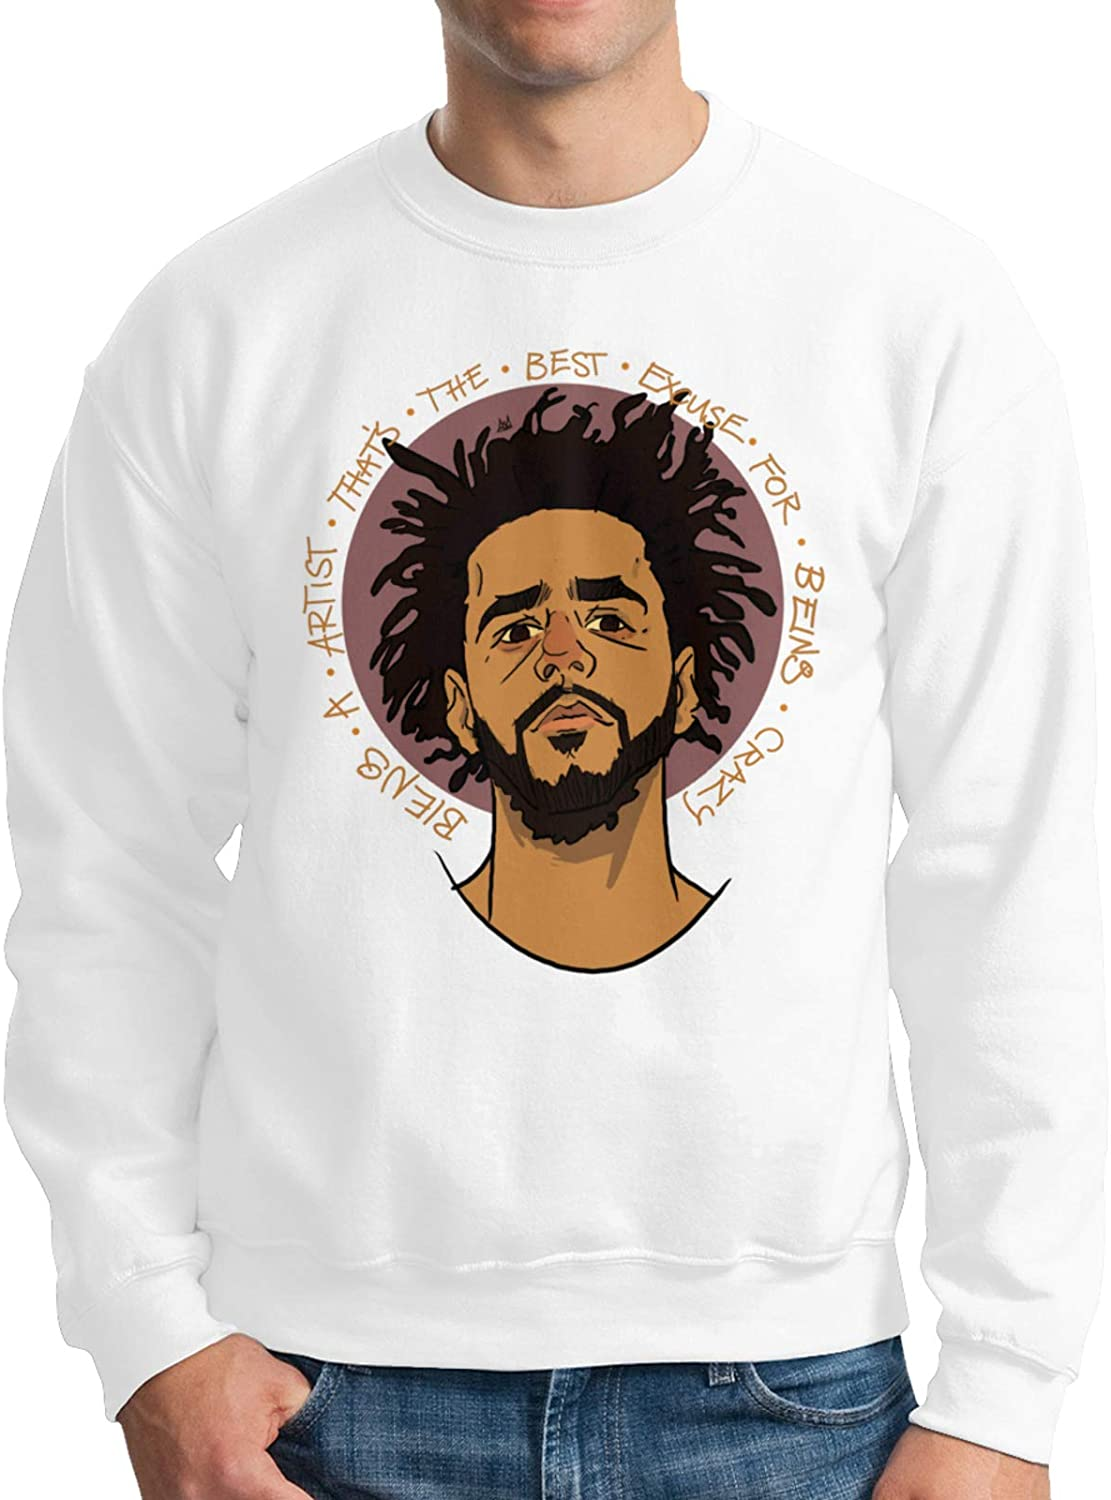 J Cole Man Women's Fashion Round Neck Sweater Sweatshirt